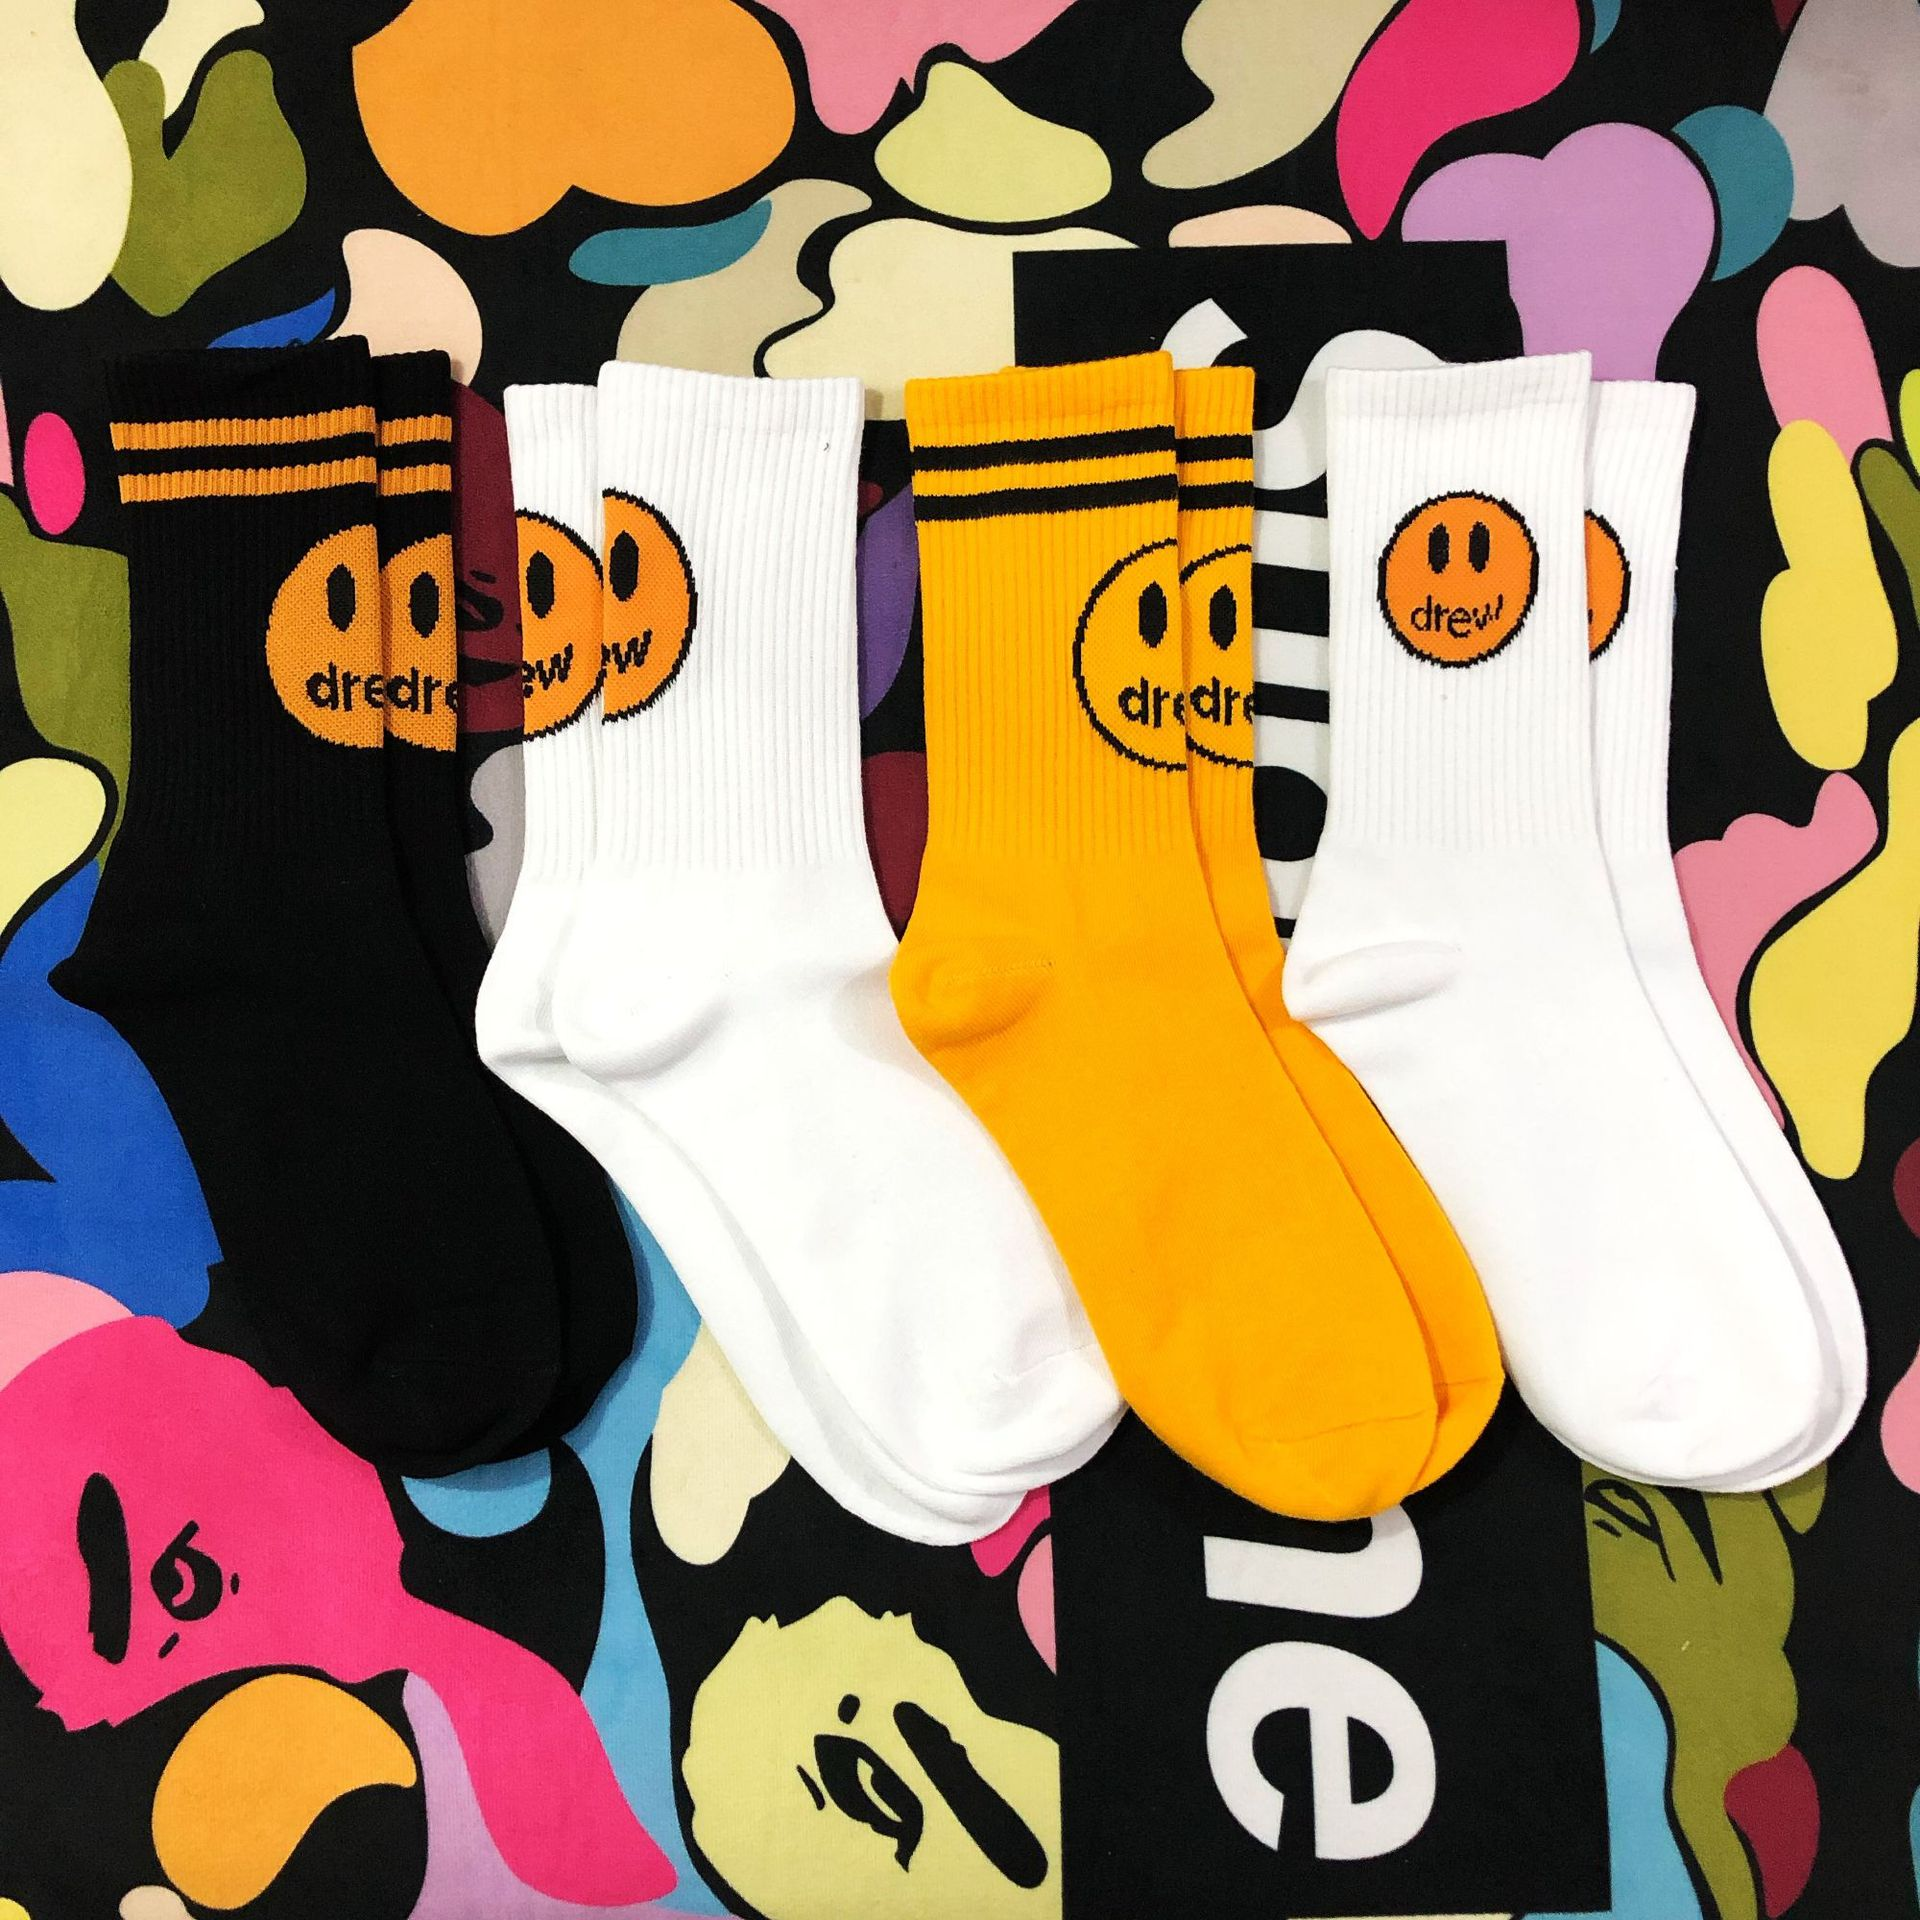 Freeshipping 2020 Adult Crew Socks Justin Bieber JB JBiebs Sox Drew Smile Face Drew House Drews Collection New Logo Fashion Wear